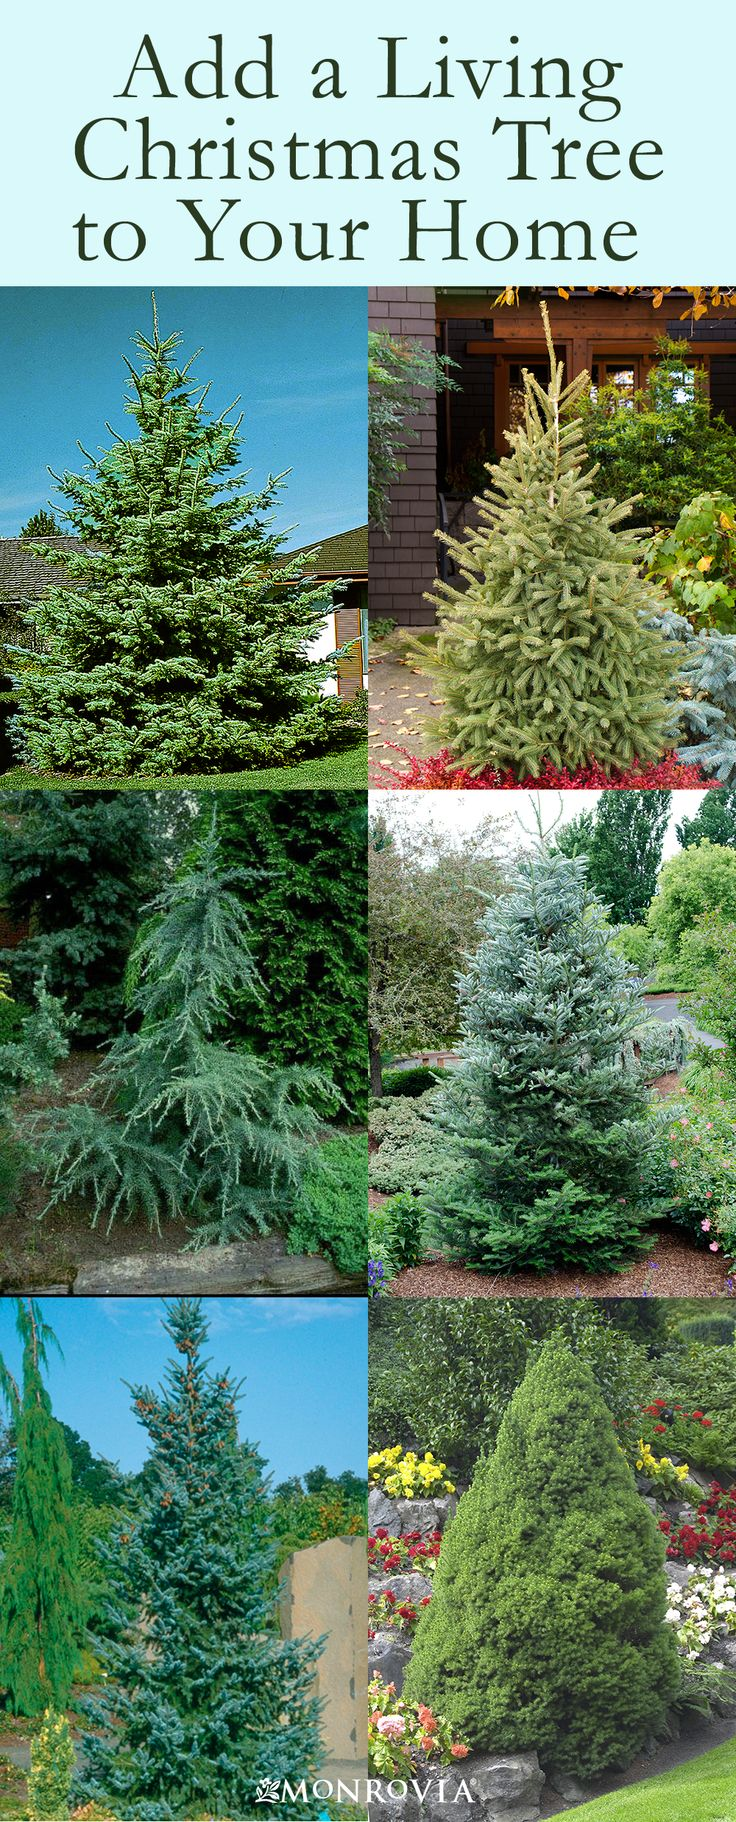 How to Buy and Care for a Living Christmas Tree - How about a living Christmas tree that you can plant in your yard after the holidays! Just follow this guide to success.